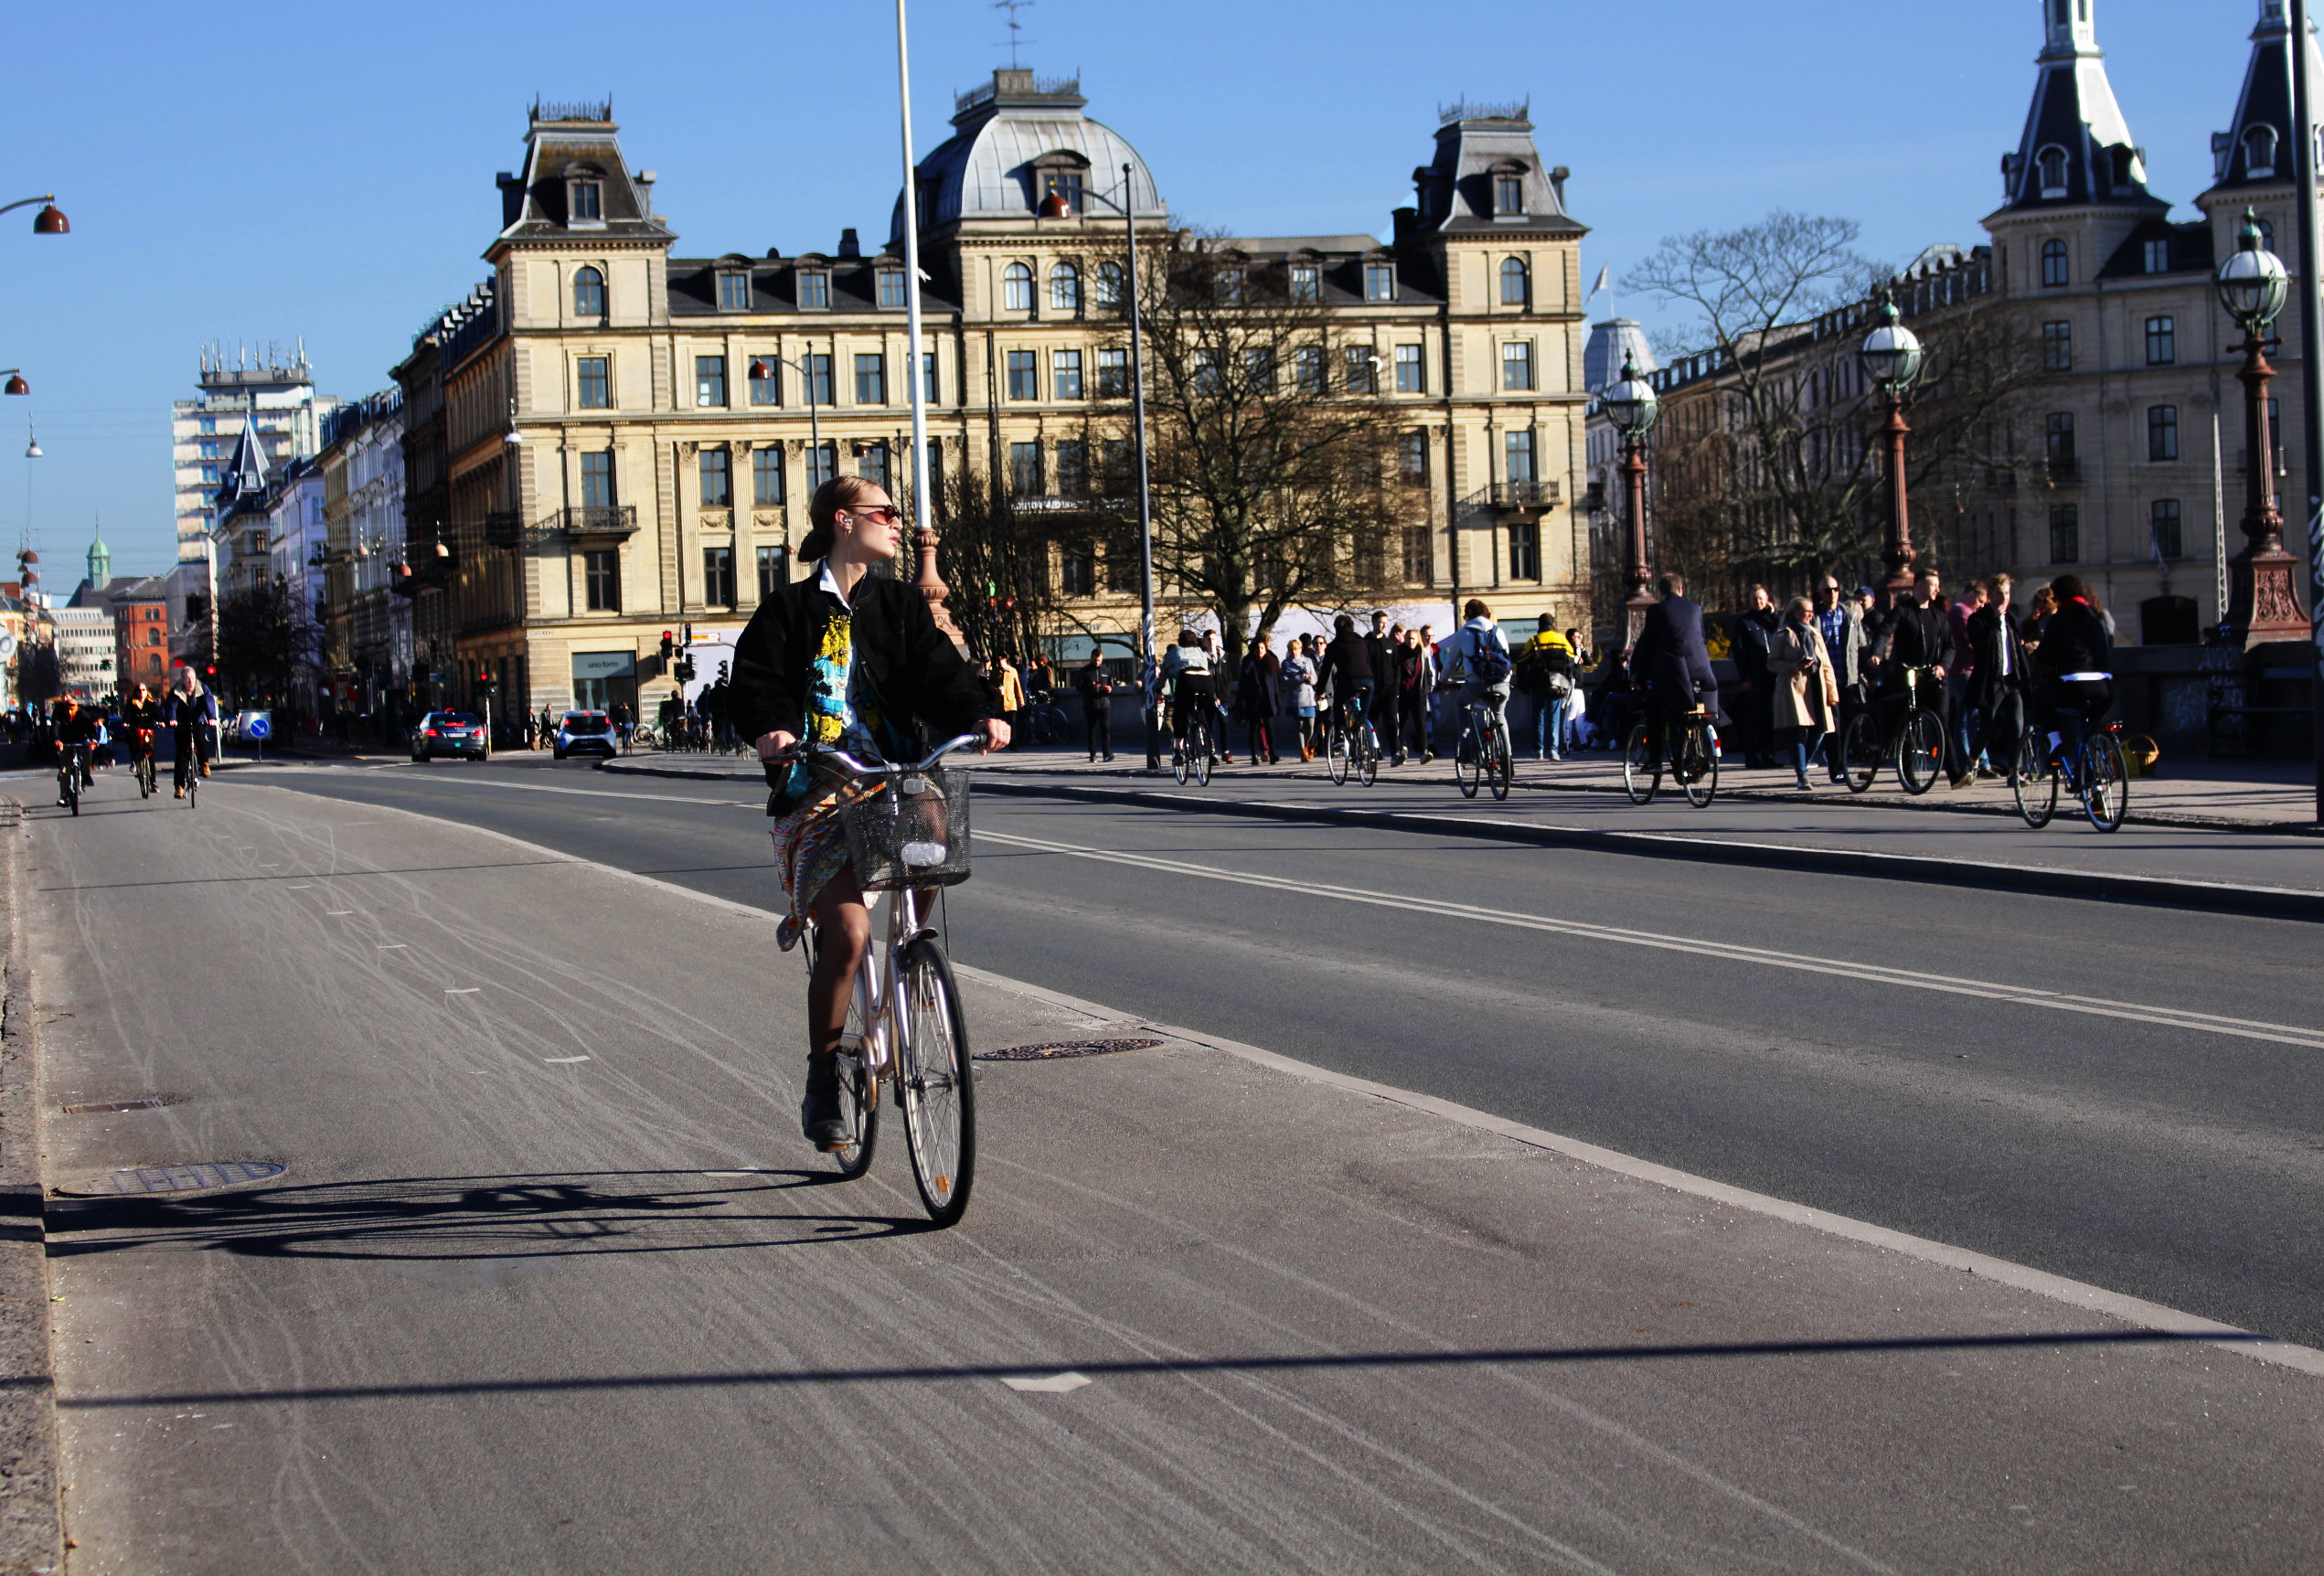 10 Habits You Pick up When Living in Denmark